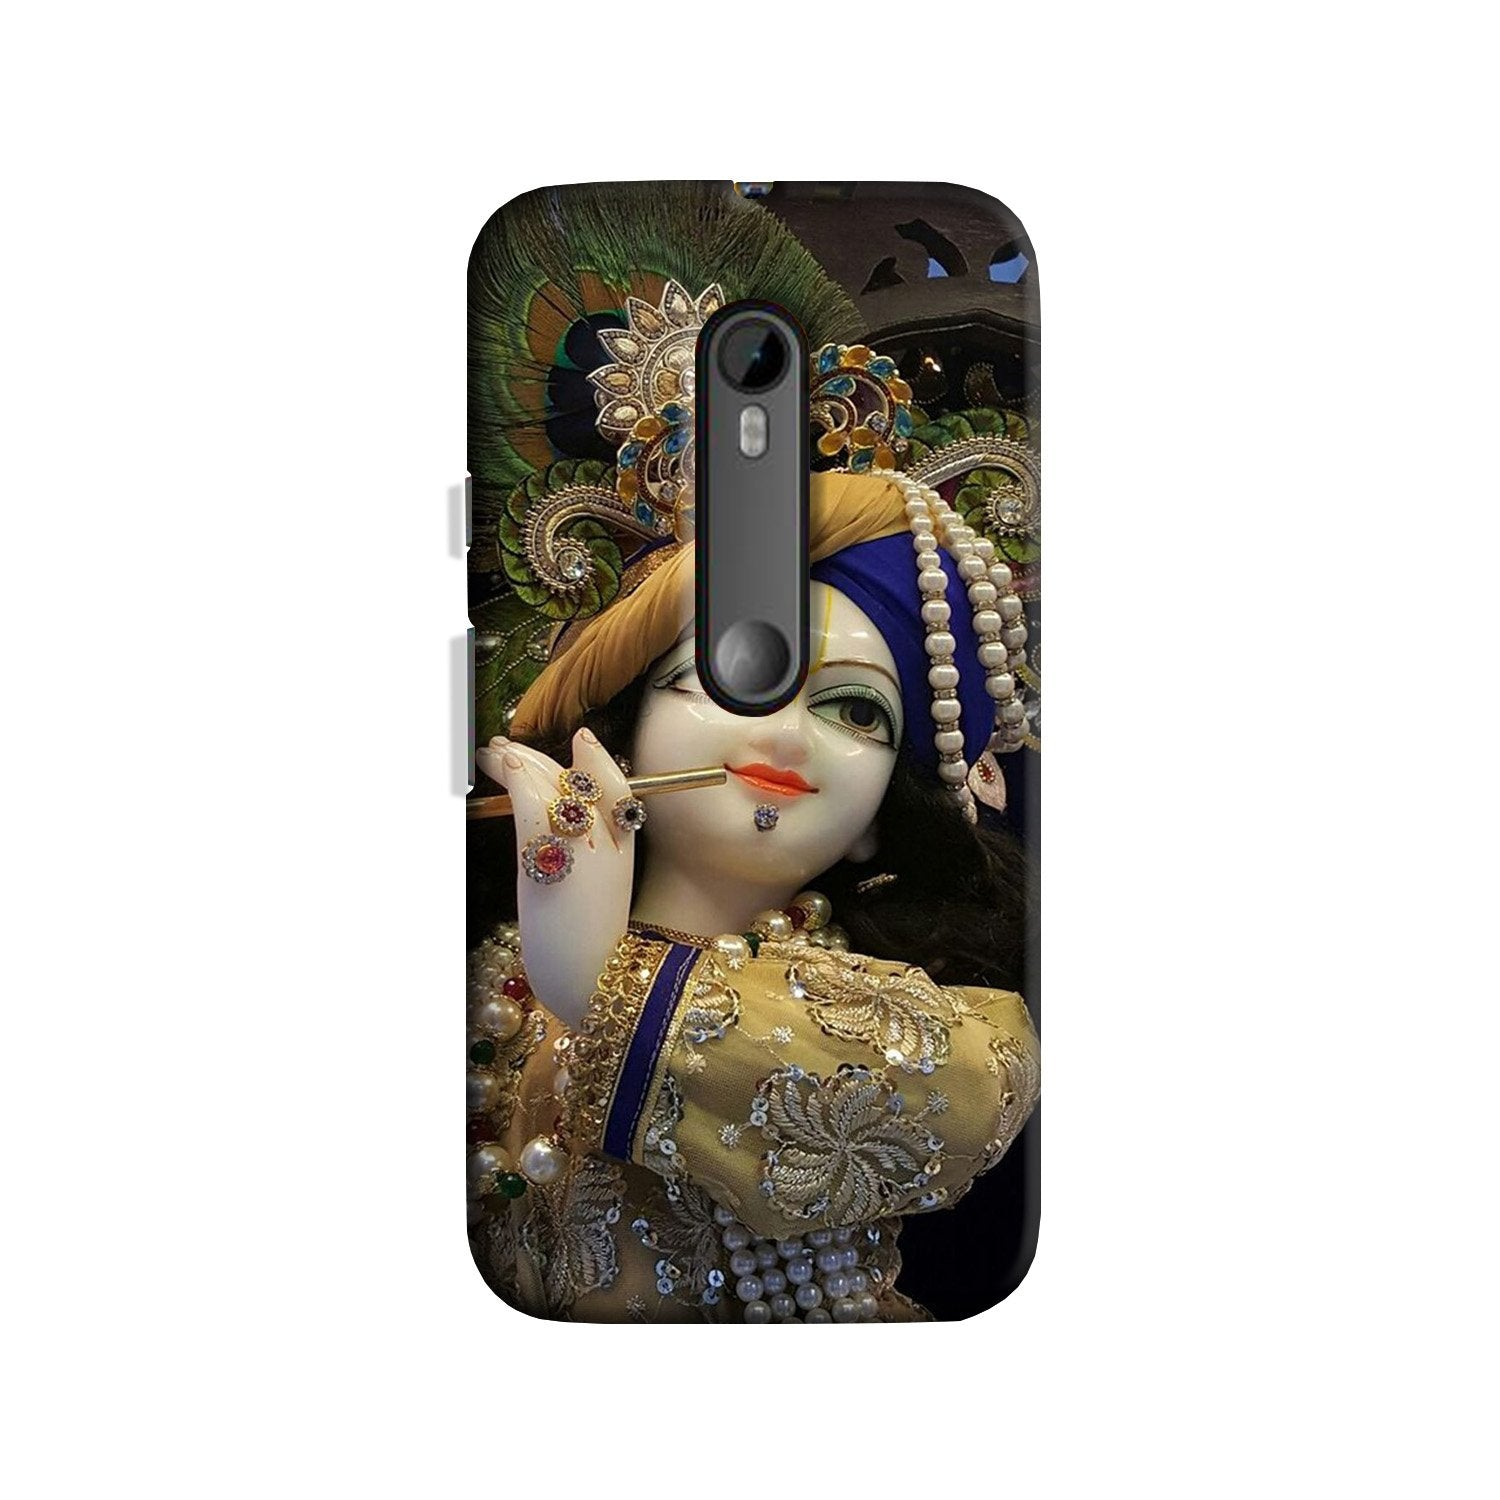 Lord Krishna3 Case for Moto G 3rd Gen